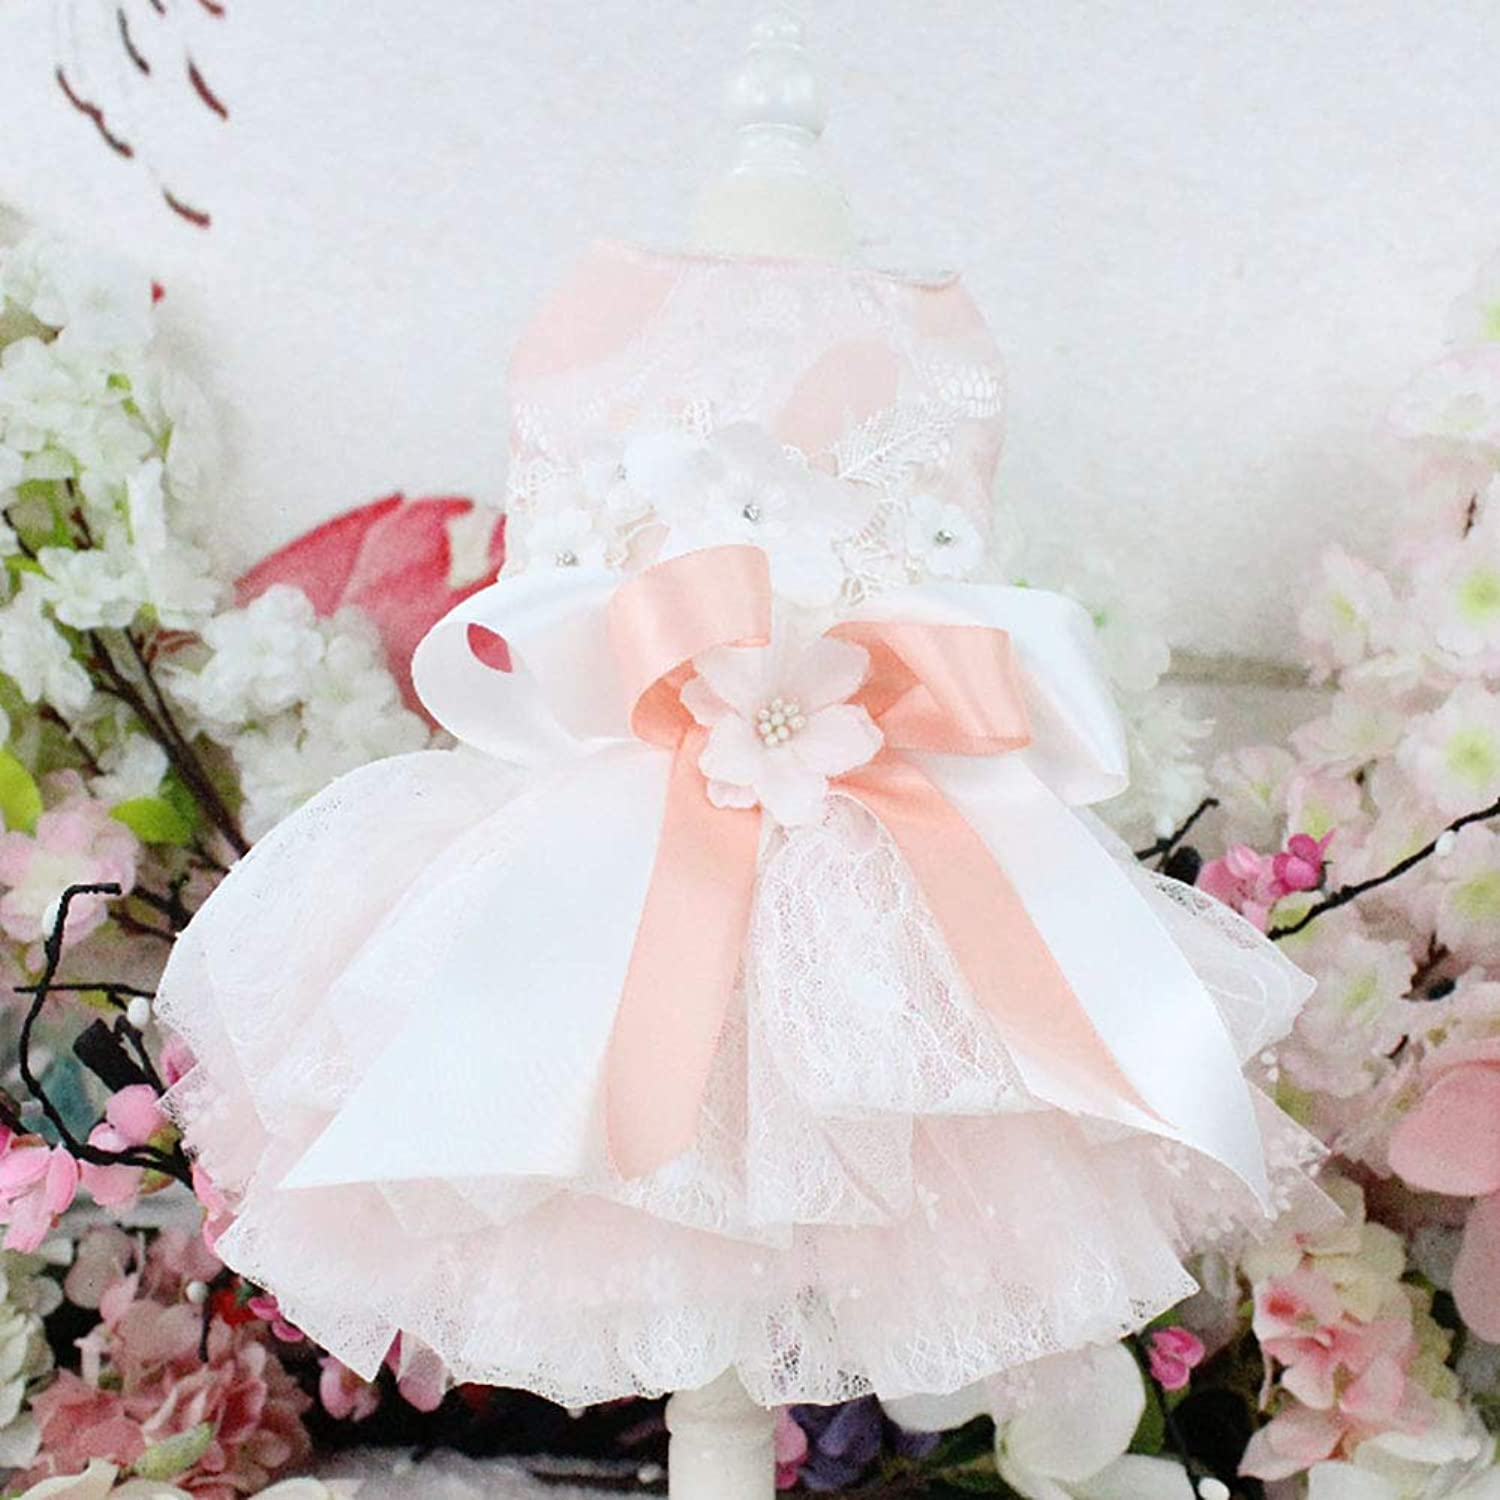 Puppy Dog Princess Dresses,Dog Bride Costume ThreeDimensional Flower Decoration Multi Skirt Suitable Wedding Photography Festival Birthday Party,XL